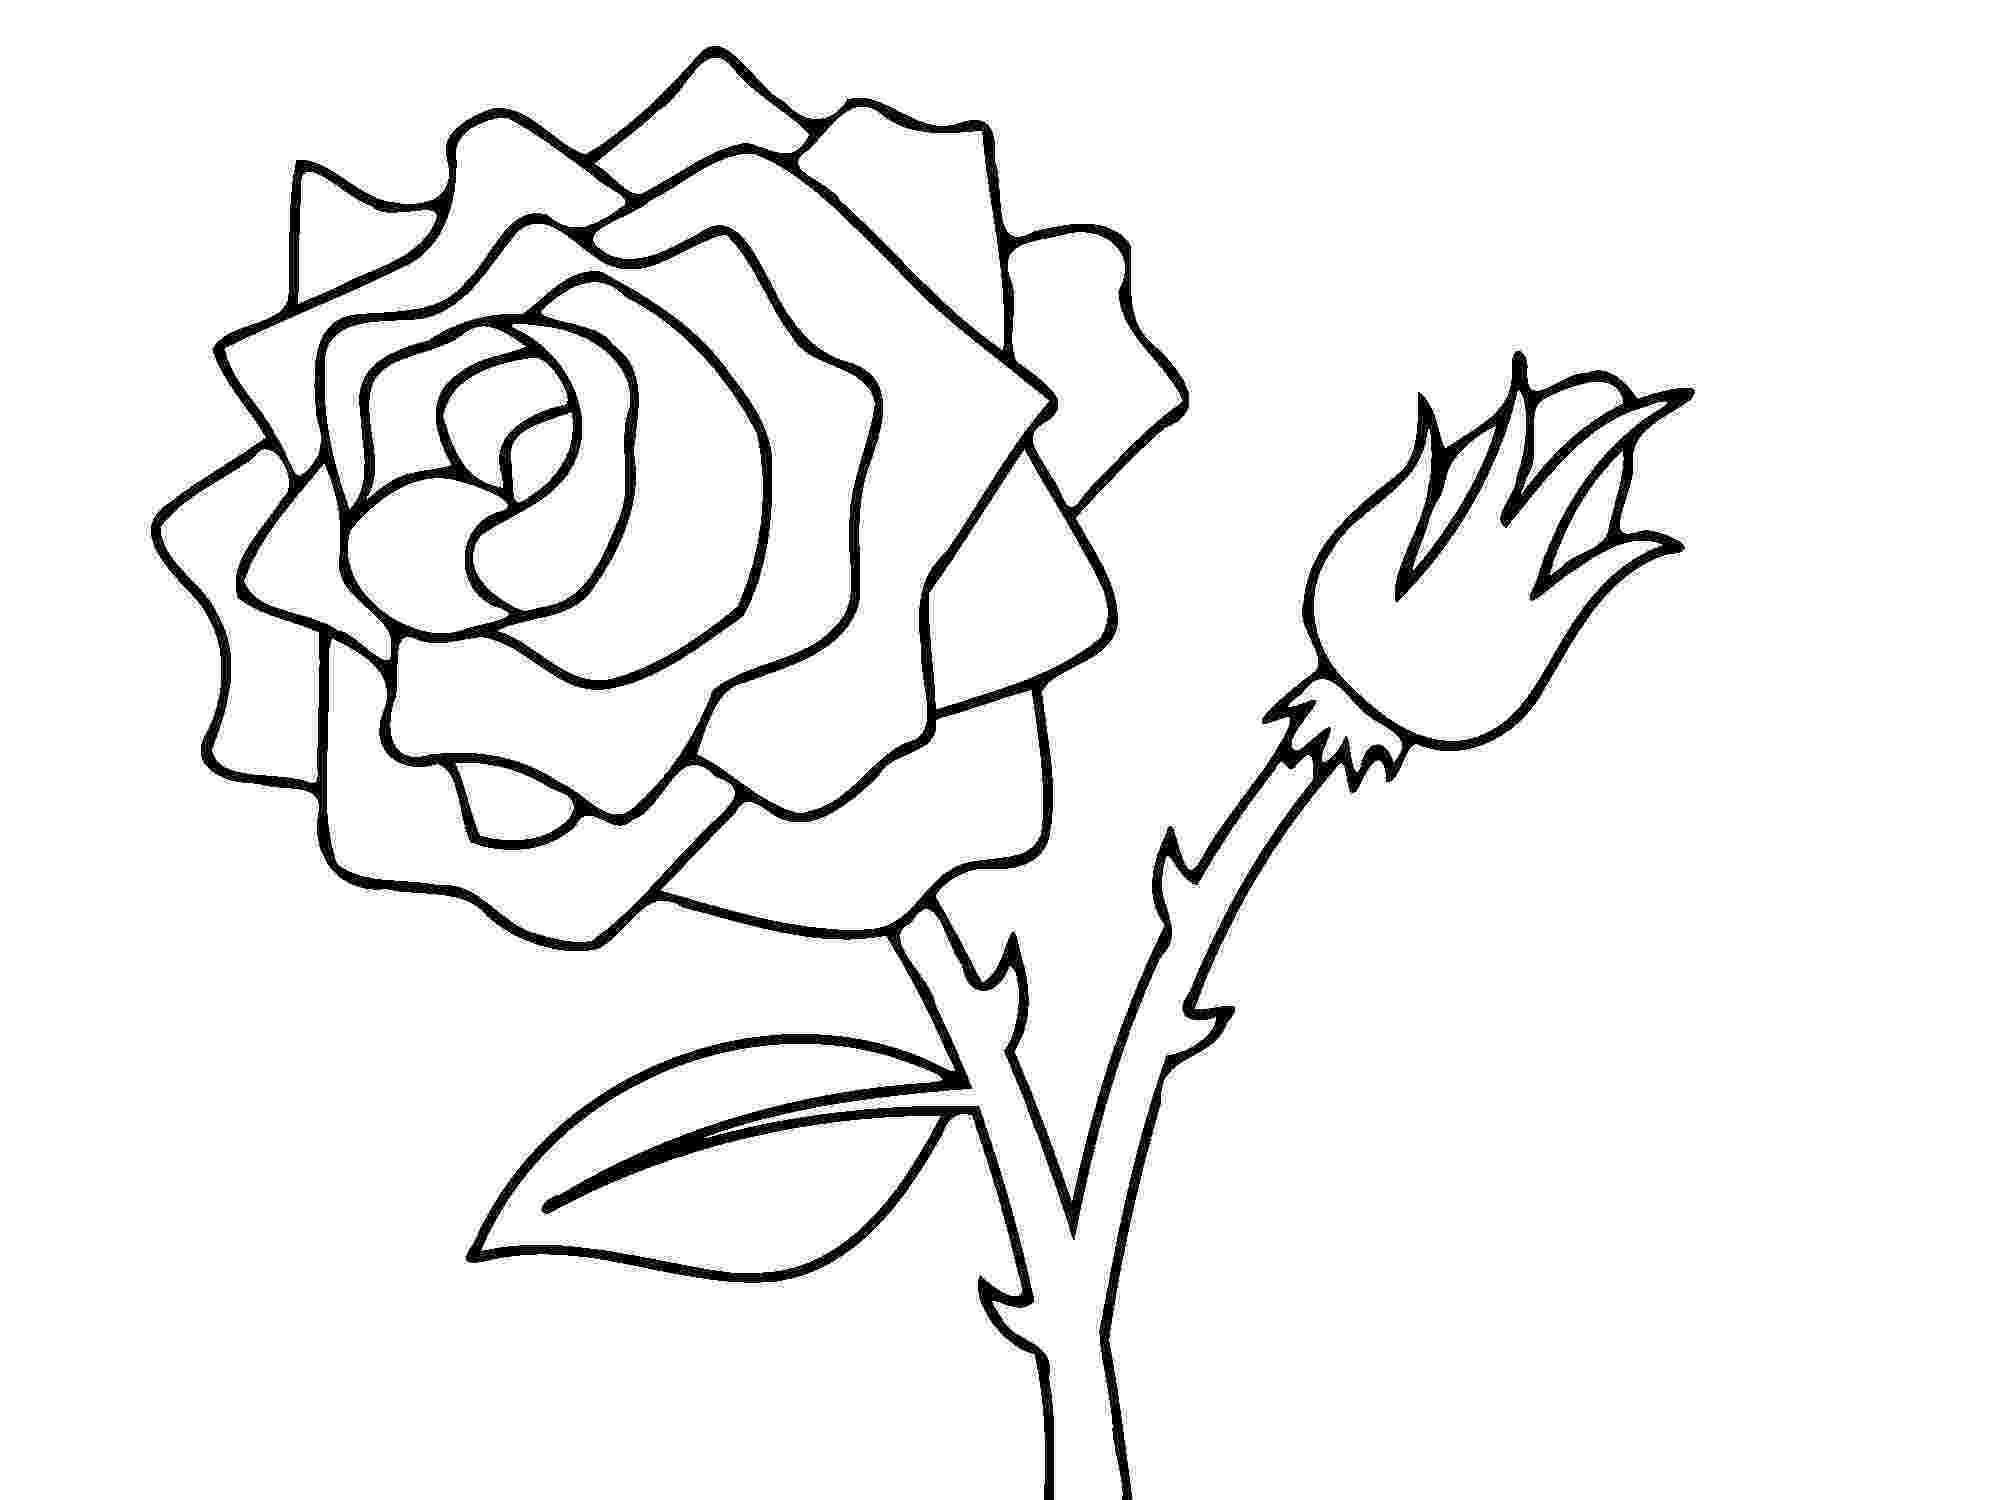 colouring pictures of roses roses flowers coloring page free printable coloring pages pictures colouring of roses